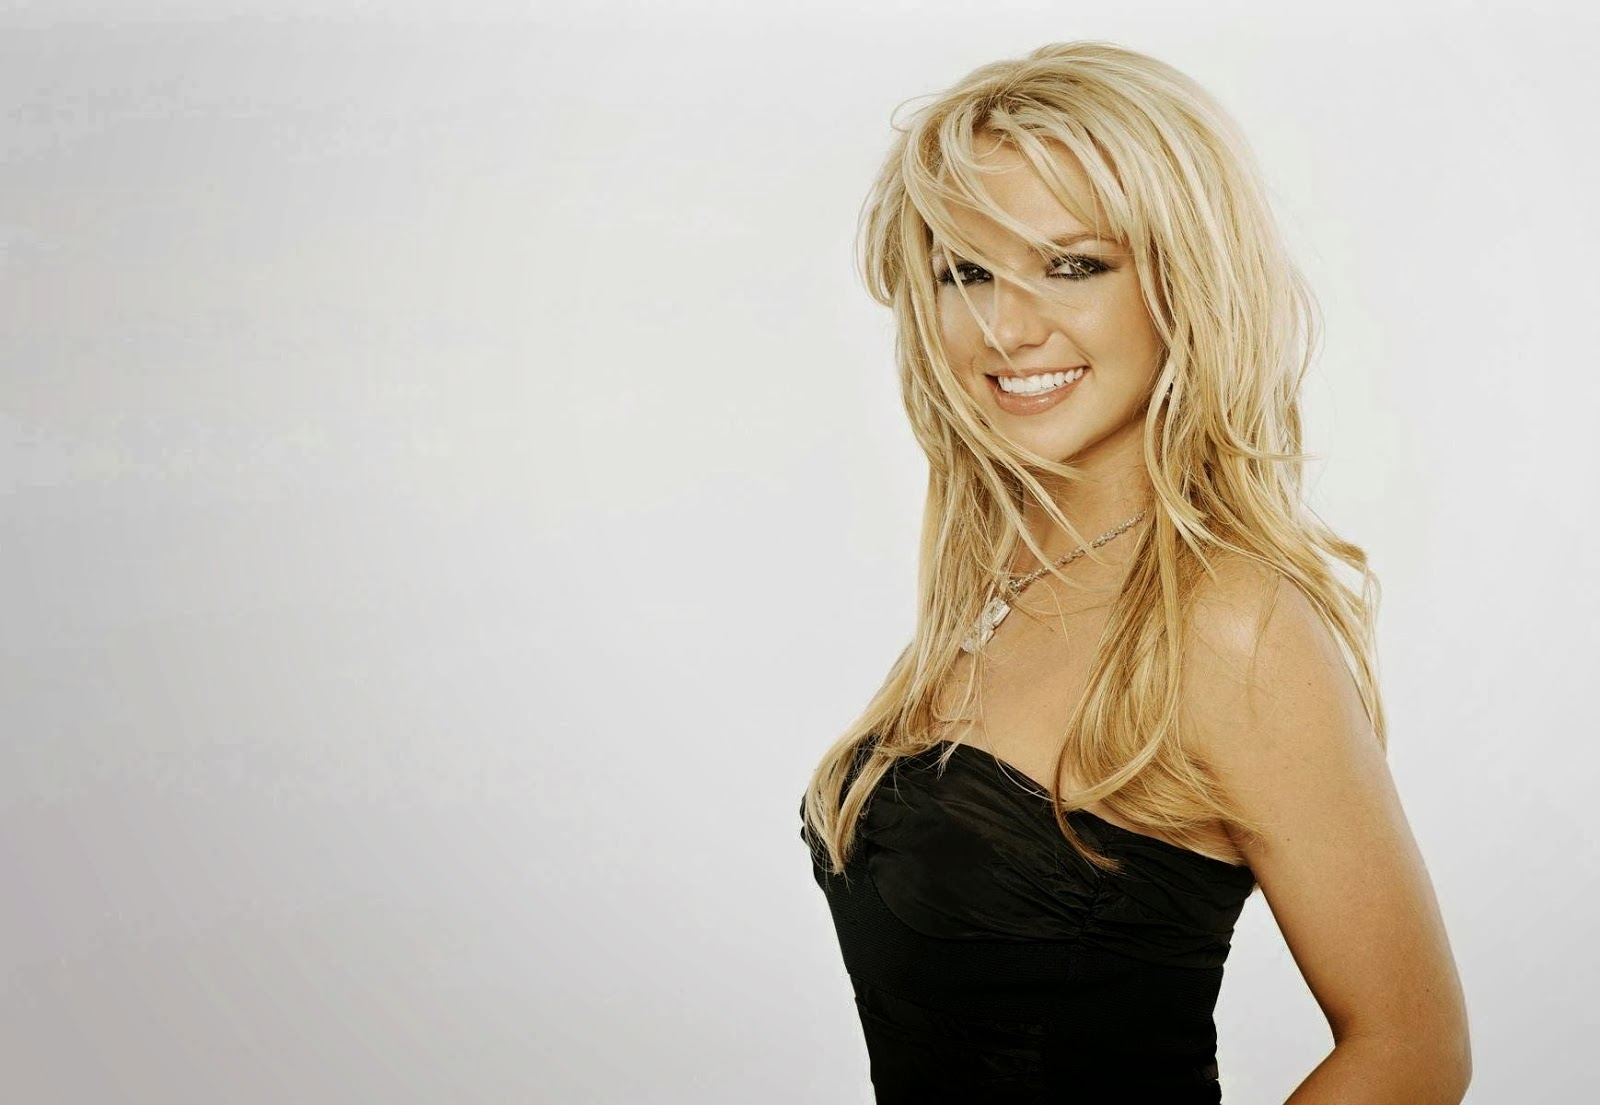 Britney+Spears+Hd+Wallpapers+Free+Download052